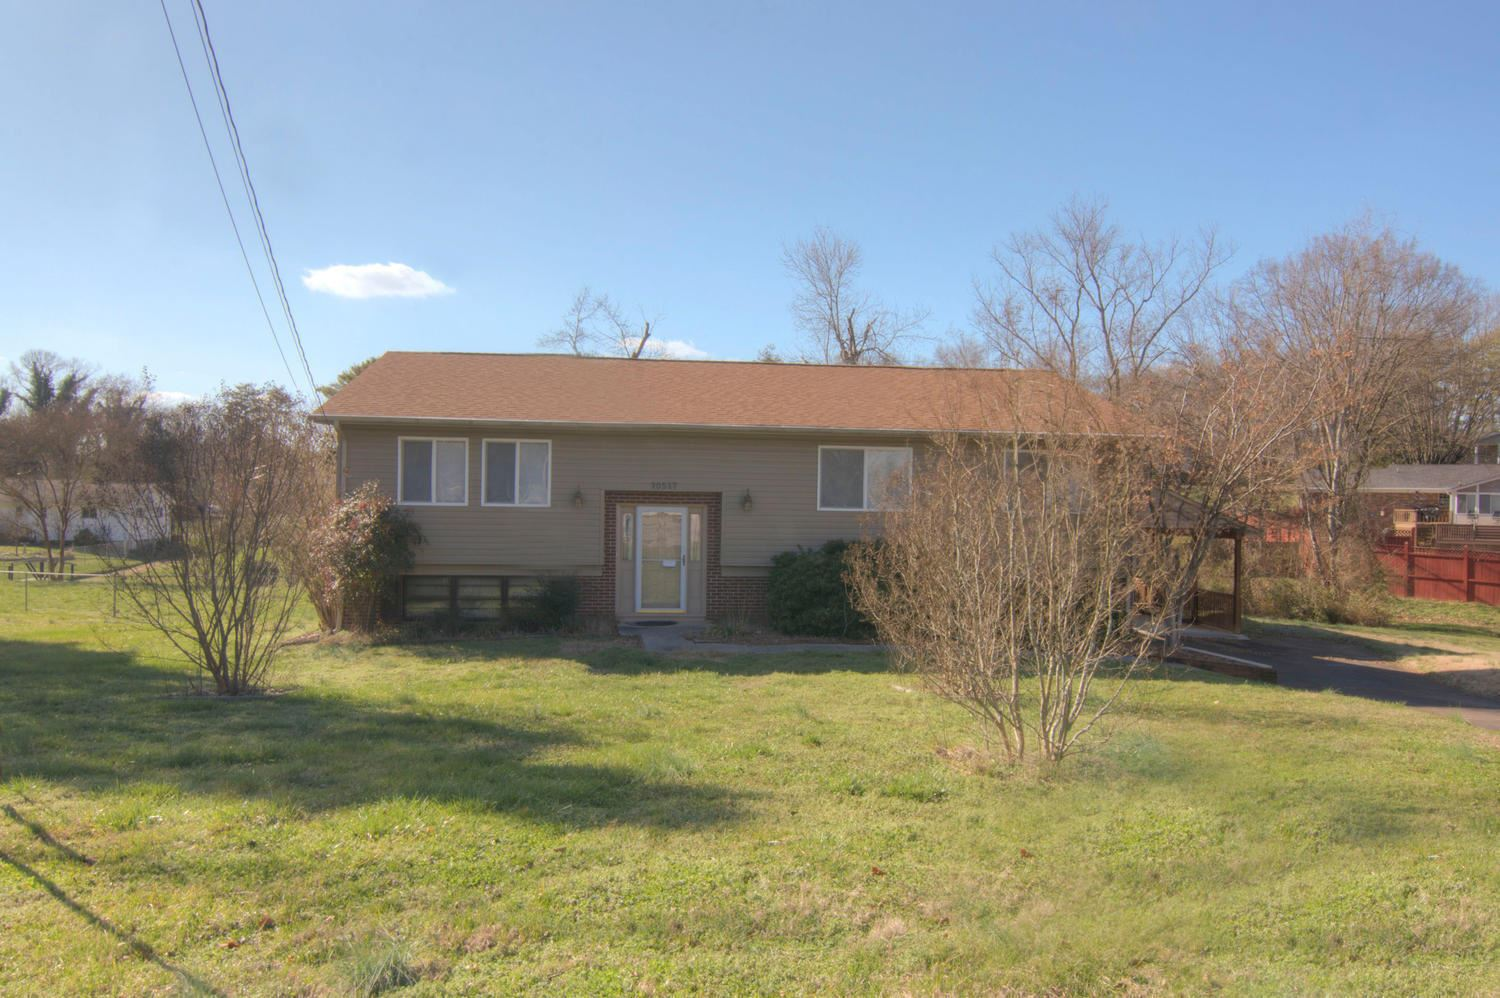 Photo of 10517 Grovedale Drive, Knoxville, TN 37922 (MLS # 1108390)